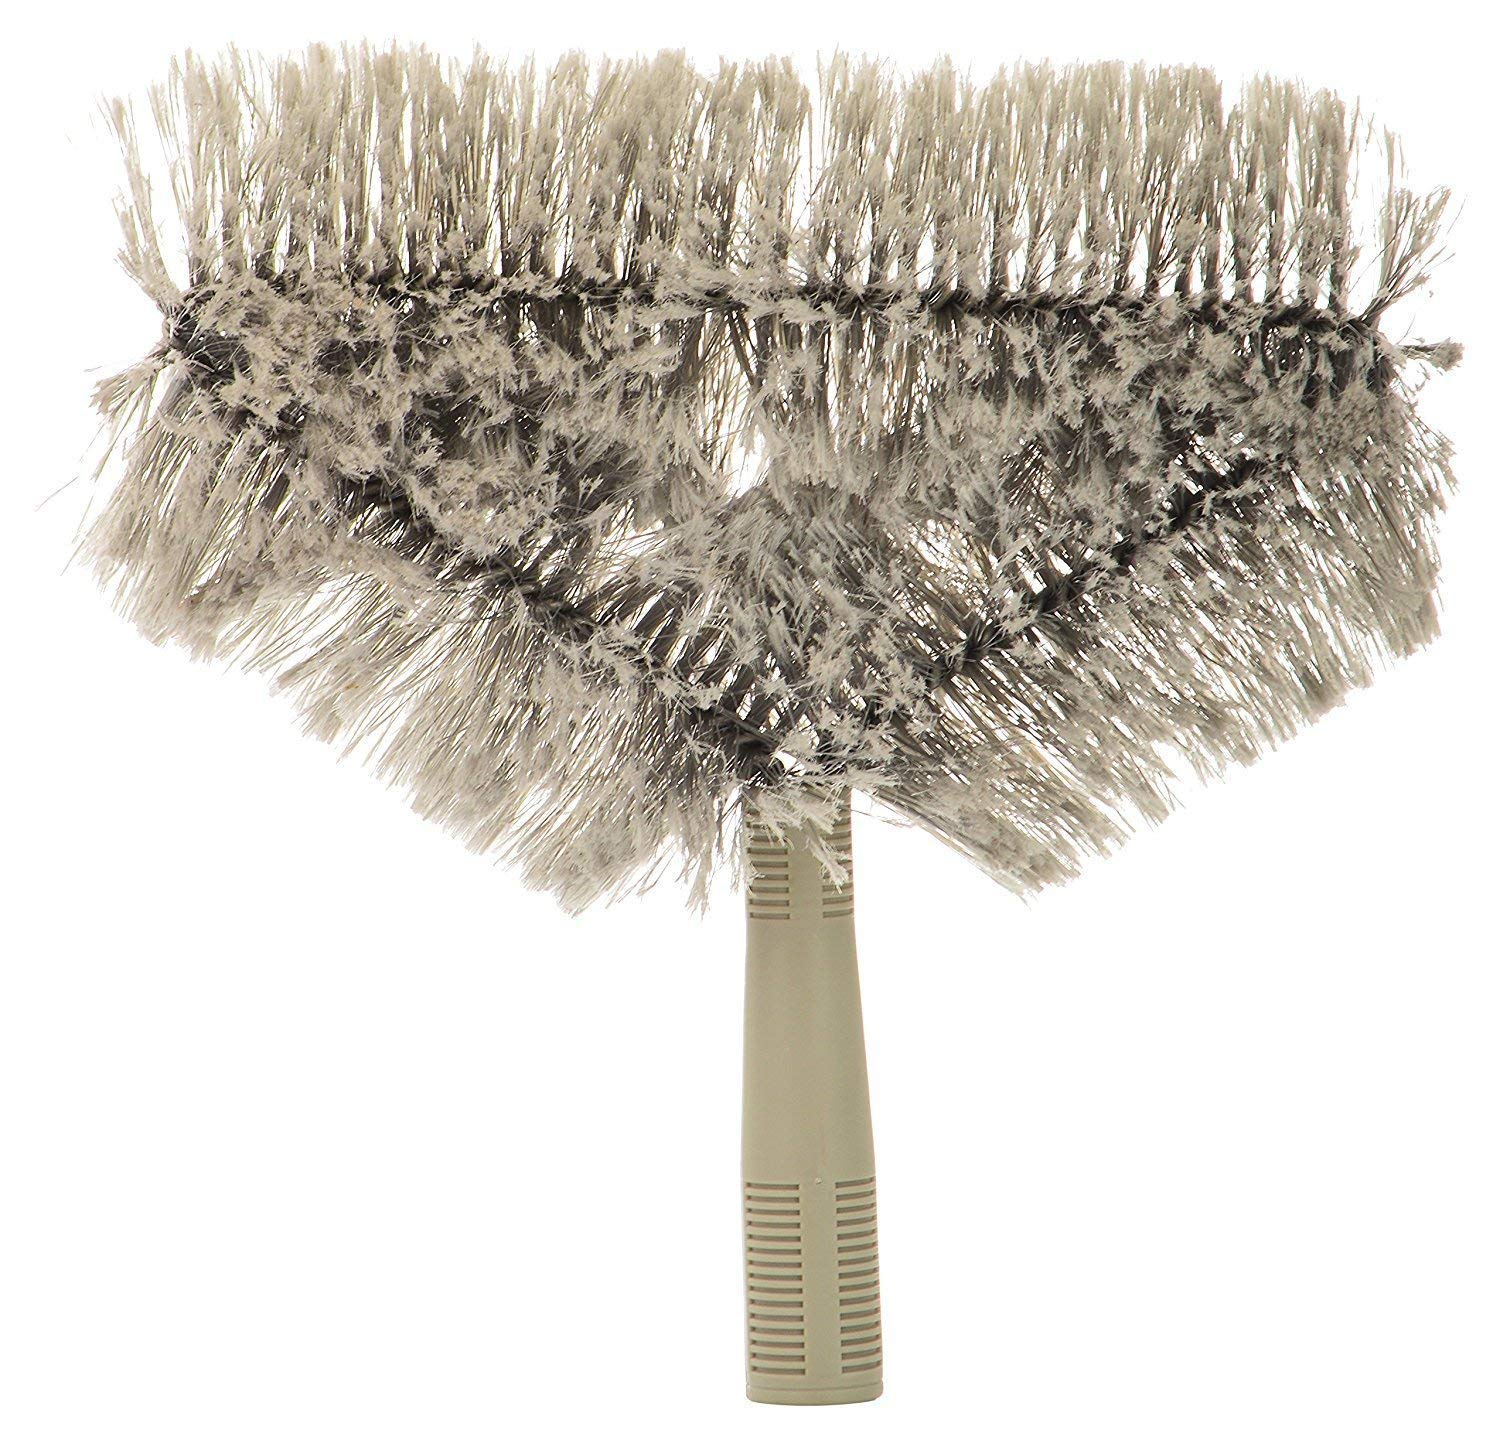 MARC Ceiling Fan Brush, Duster, Cleaner, Round Brush with Telescopic ...